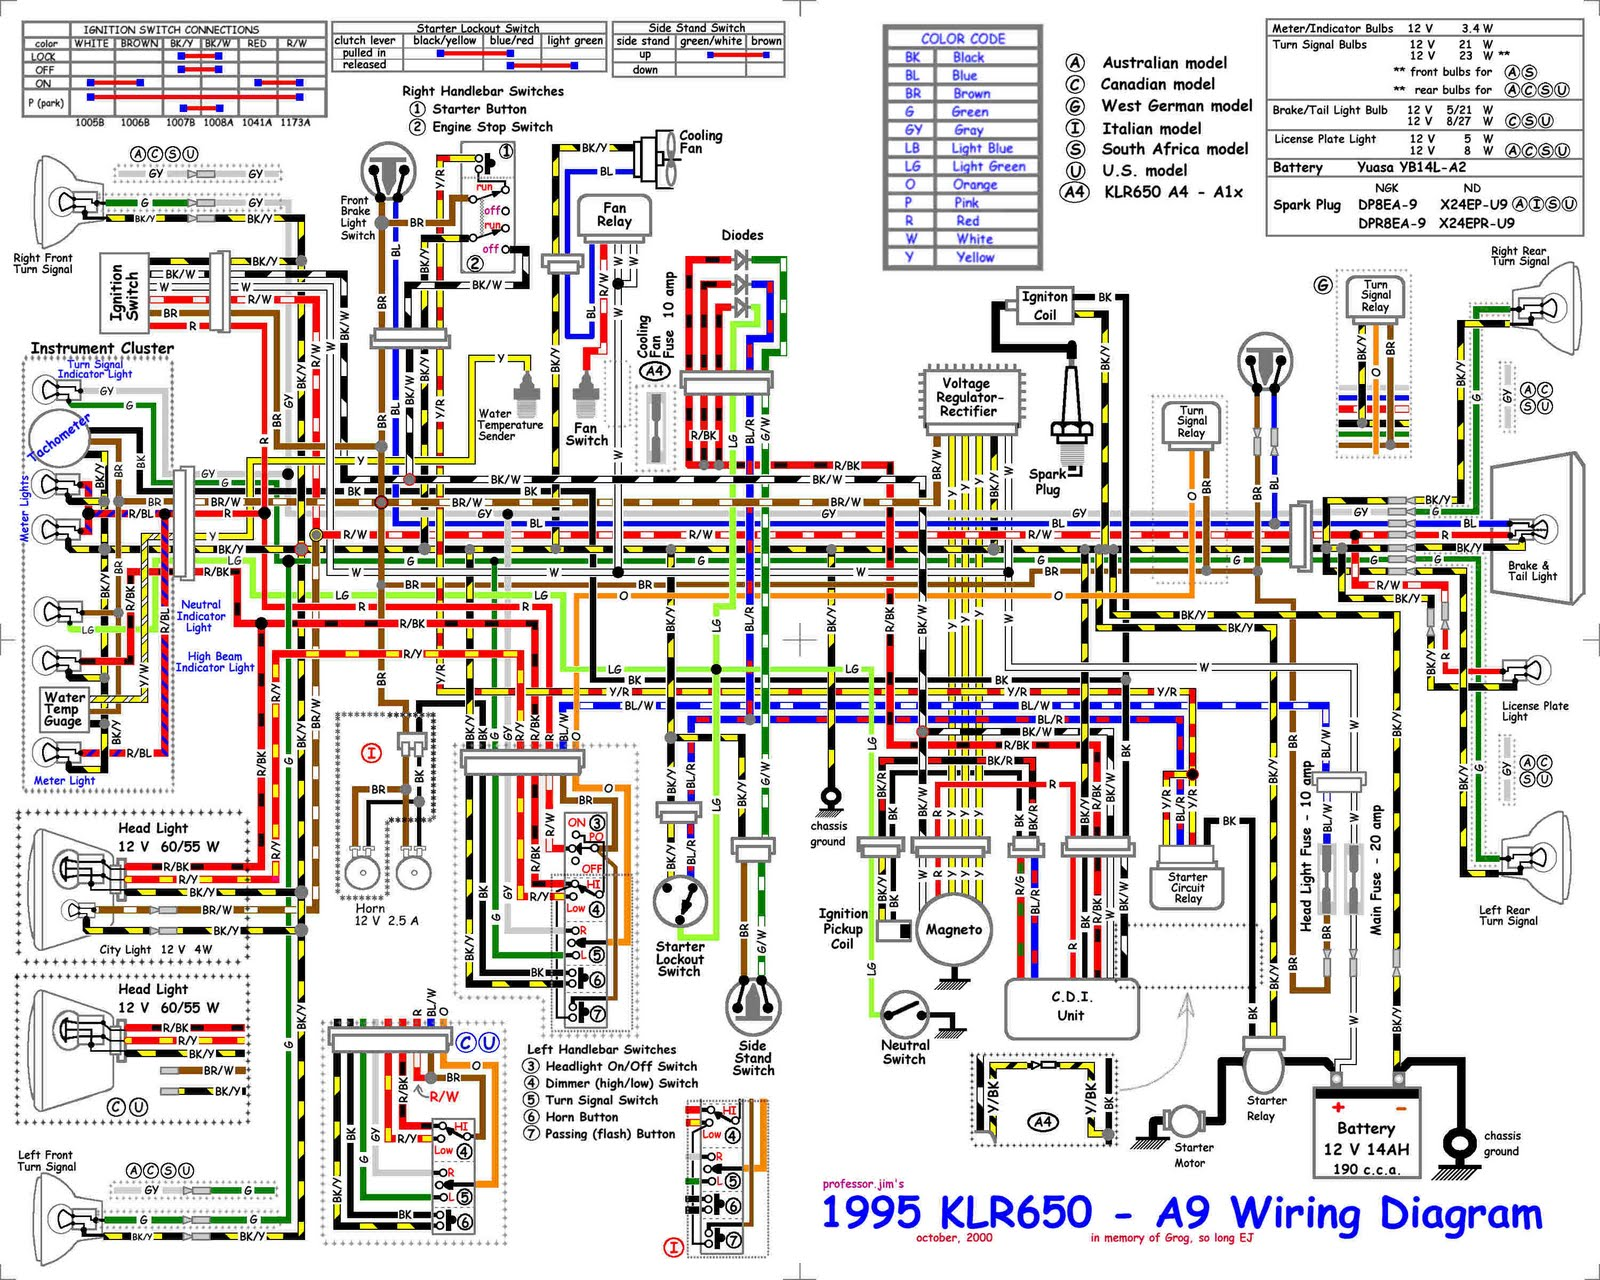 polaris sportsman 500 starter solenoid wiring diagram with 1974 Chevrolet Monte Carlo Wiring on Polaris Sportsman Ignition Wiring Diagram further 47q0m Test Stator Polaris Sportsman Nnn Nnn Nnnnmod moreover Ho Switch Wiring Diagram likewise Engine in addition 1974 Chevrolet Monte Carlo Wiring.